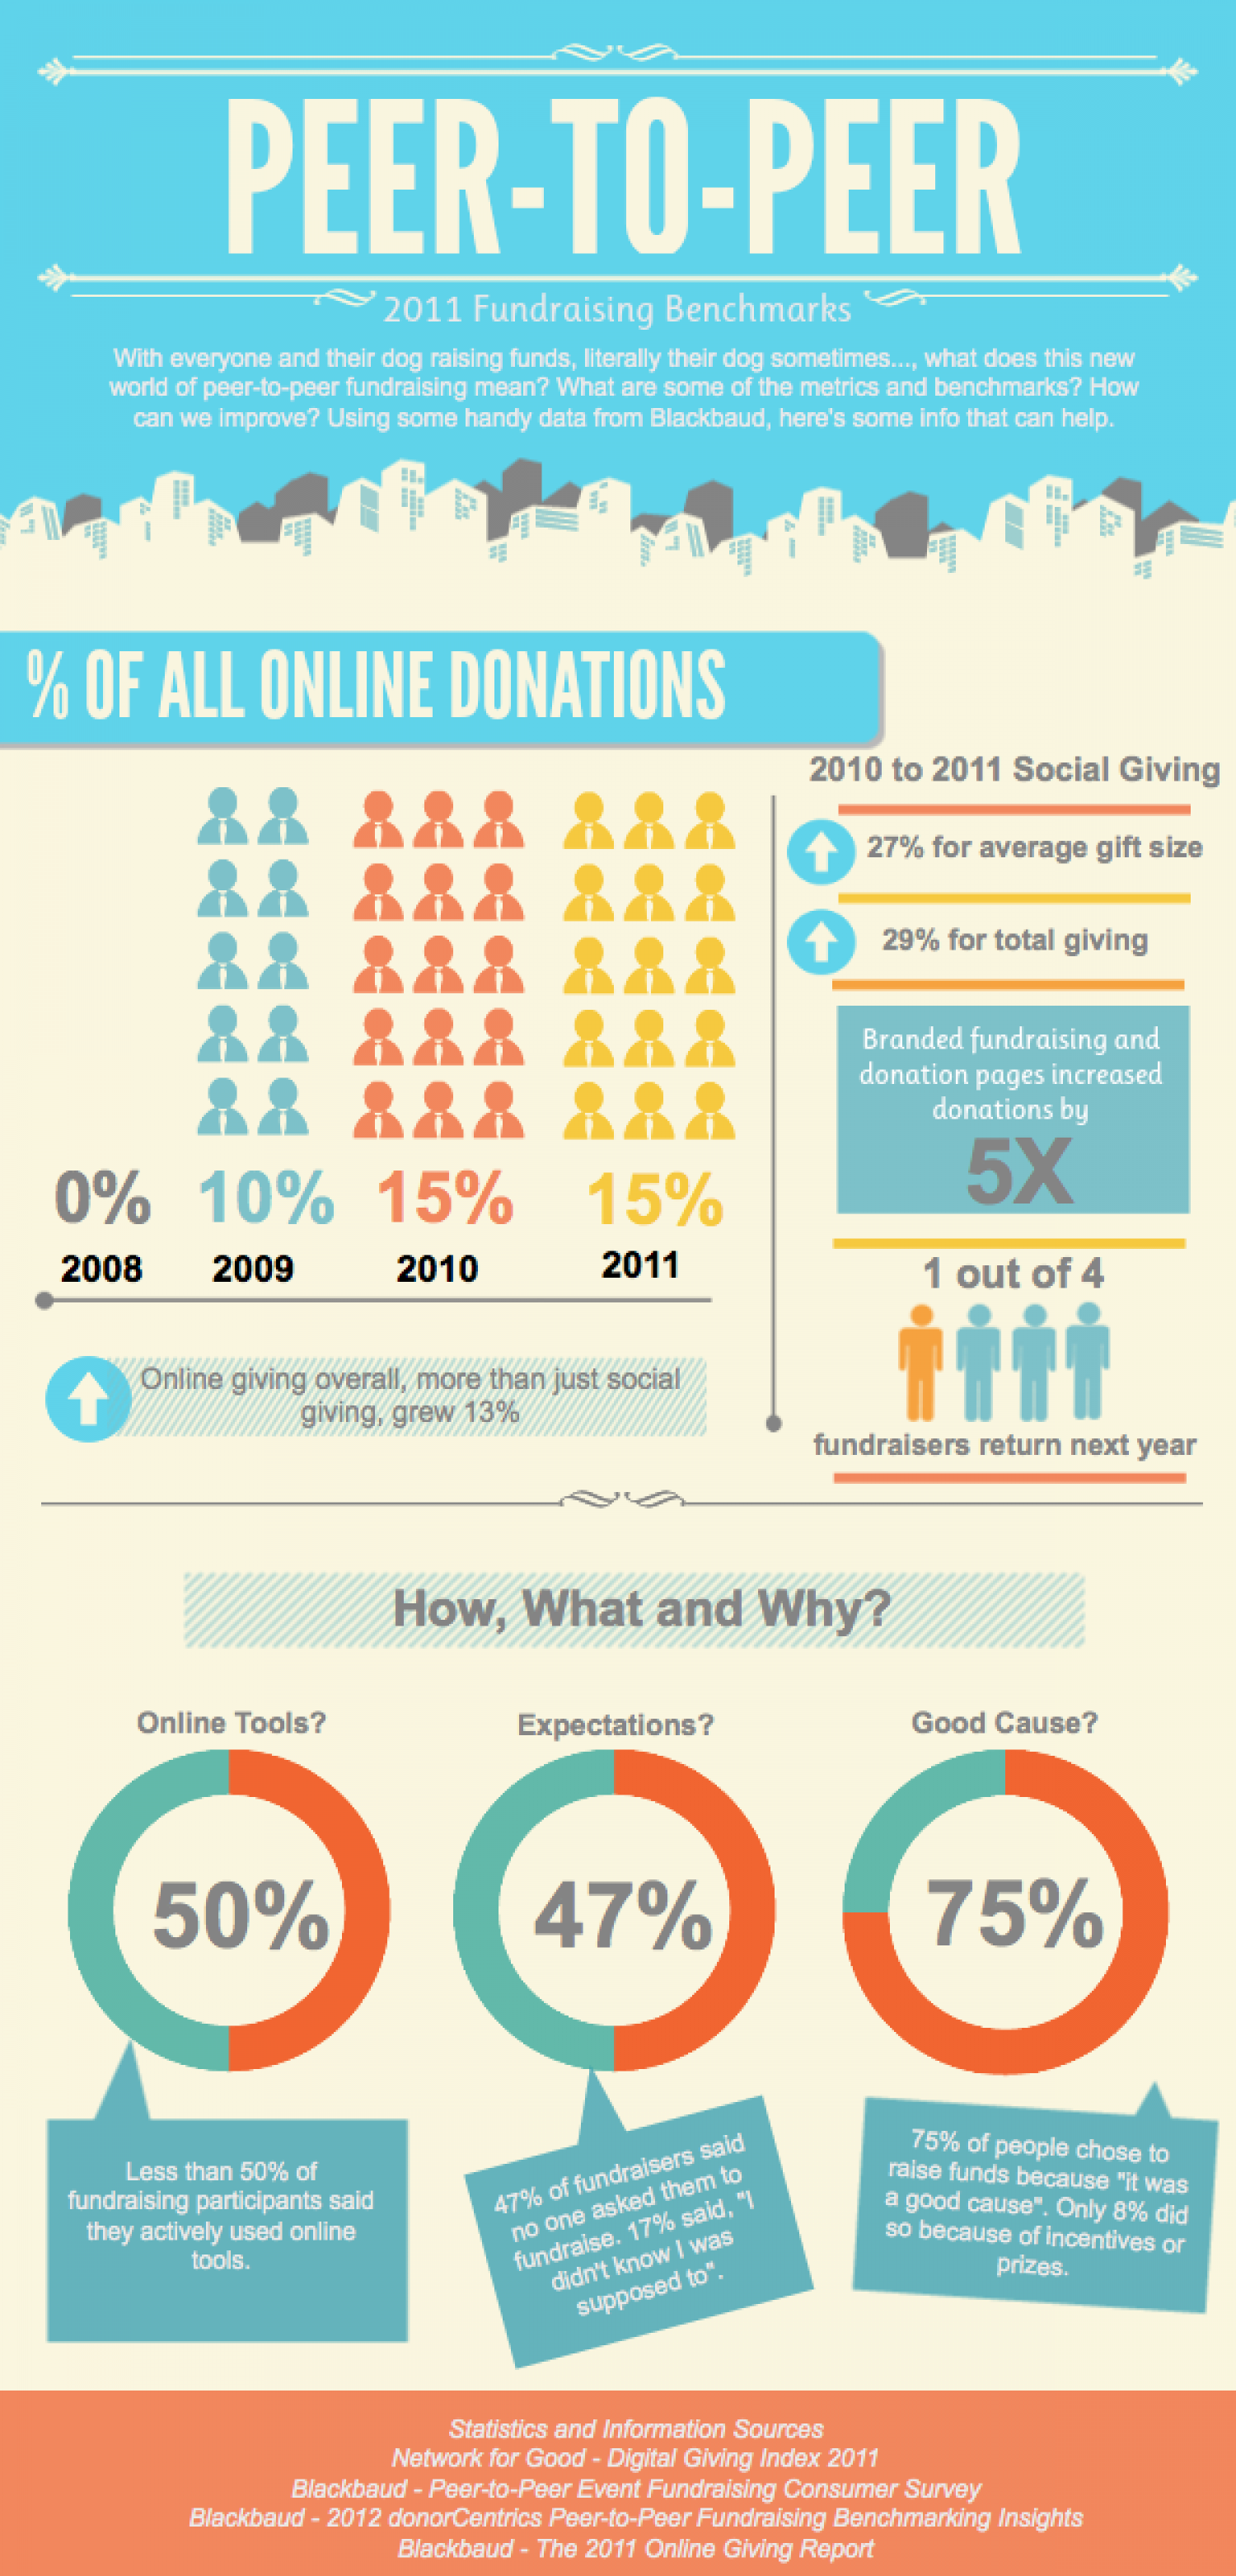 Peer-to-Peer Fundraising Benchmarks Infographic